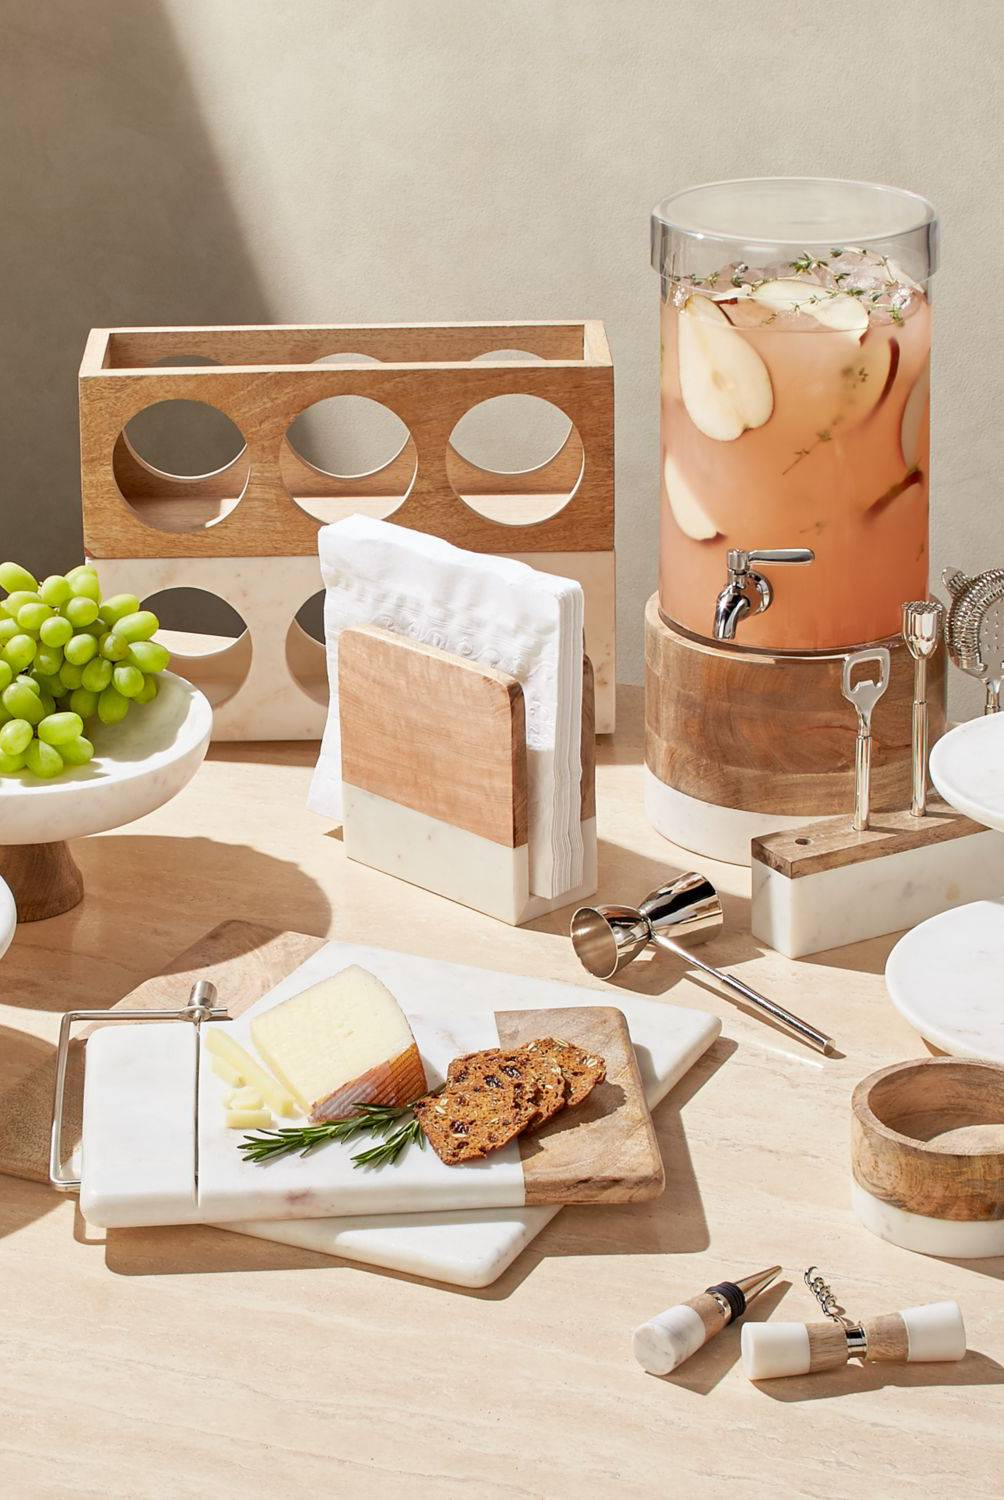 Crate & Barrel - Set x4 de Coctelería Acero Inoxidable